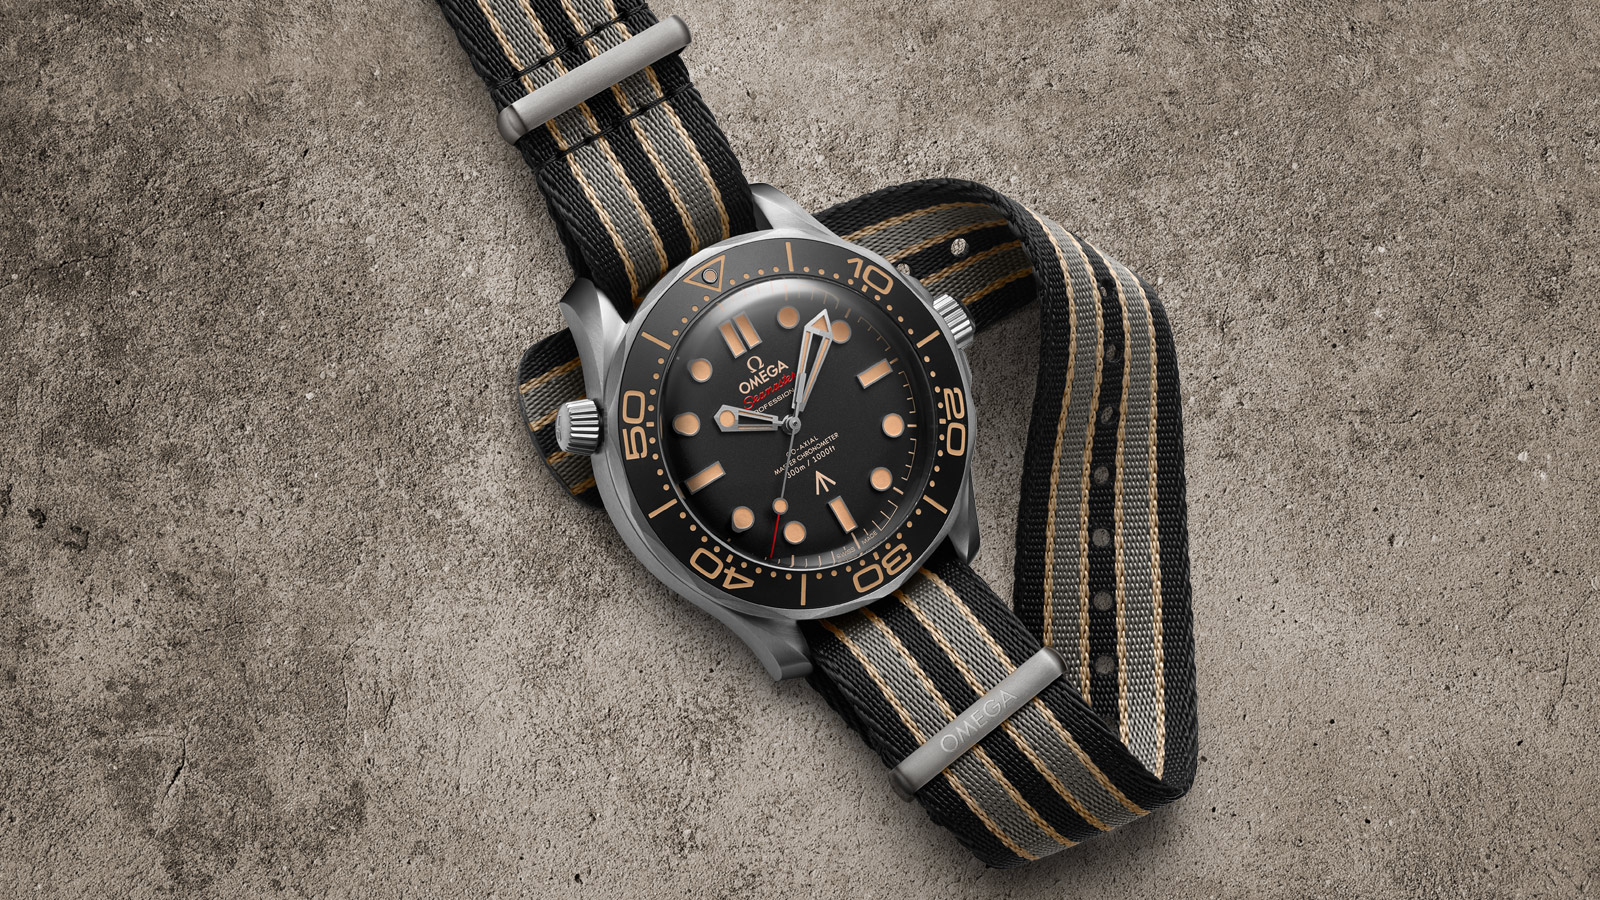 Seamaster Diver 300M Édition 007 - Diapositive 3 - 83561